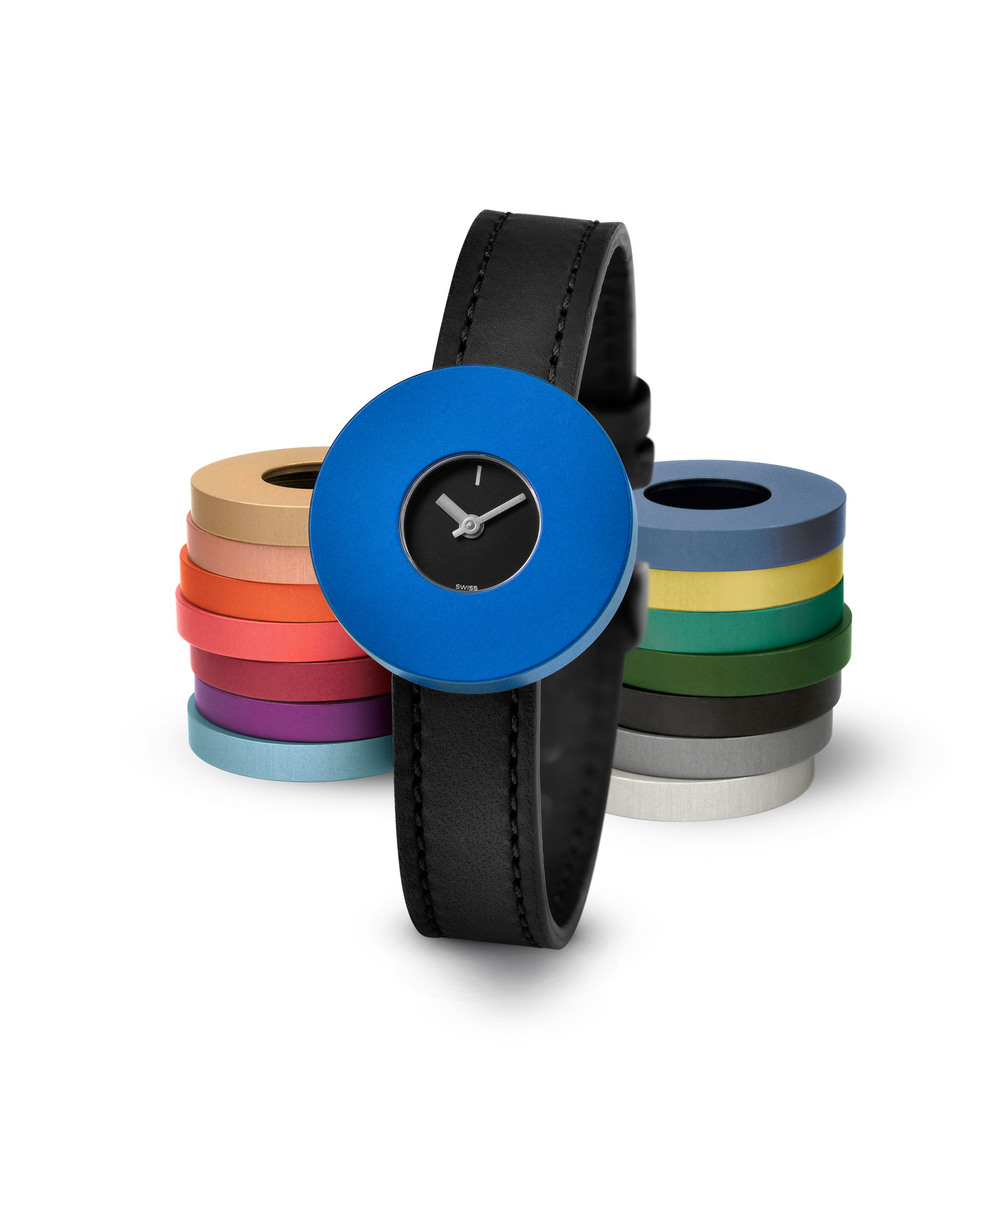 Junod-Vignelli MV Small blk_dial blue_ring leather_band-small.JPG